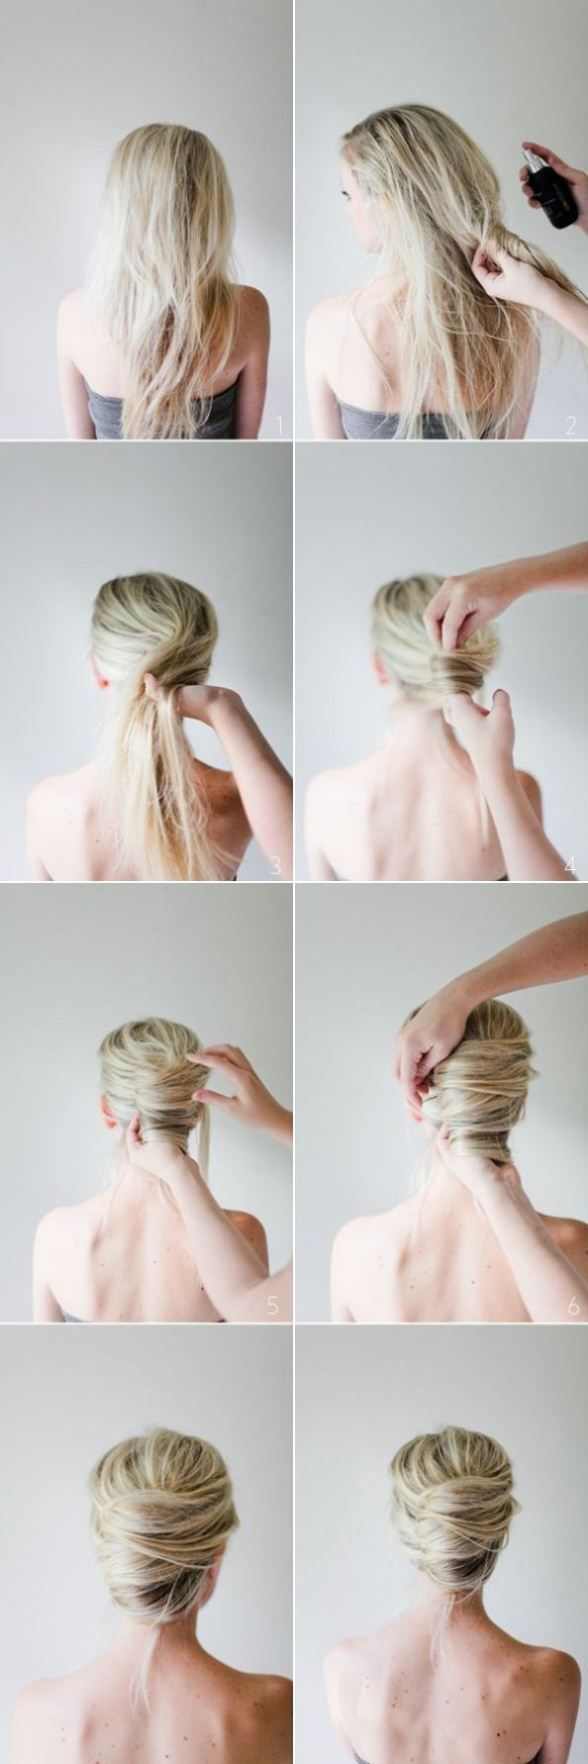 10 Tips for Getting Longer,Thicker, Sexier Hair - The Ultimate Beauty Guide